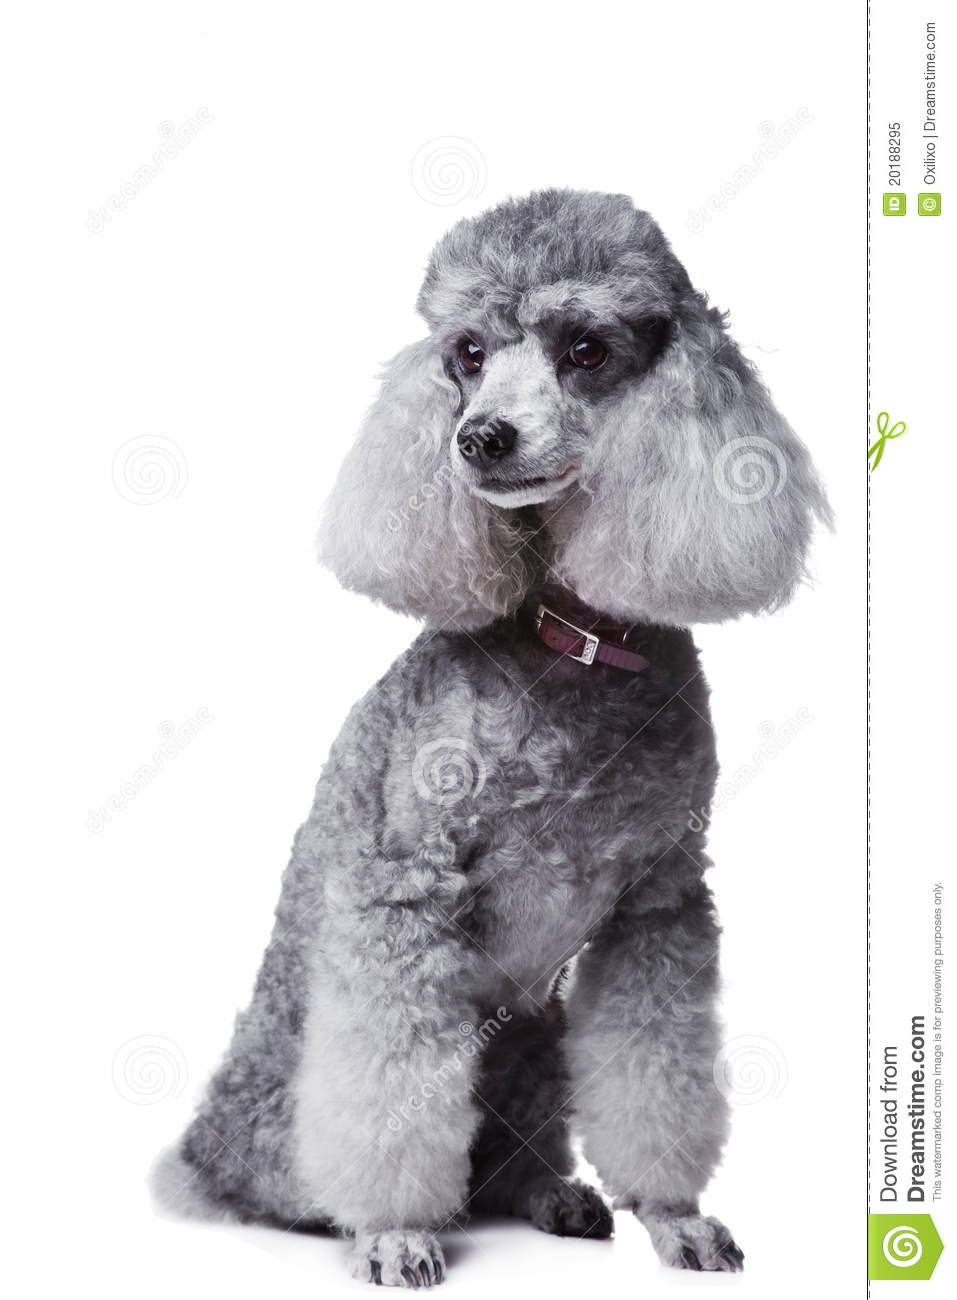 Gray Poodle On Isolated White Background Royalty Free